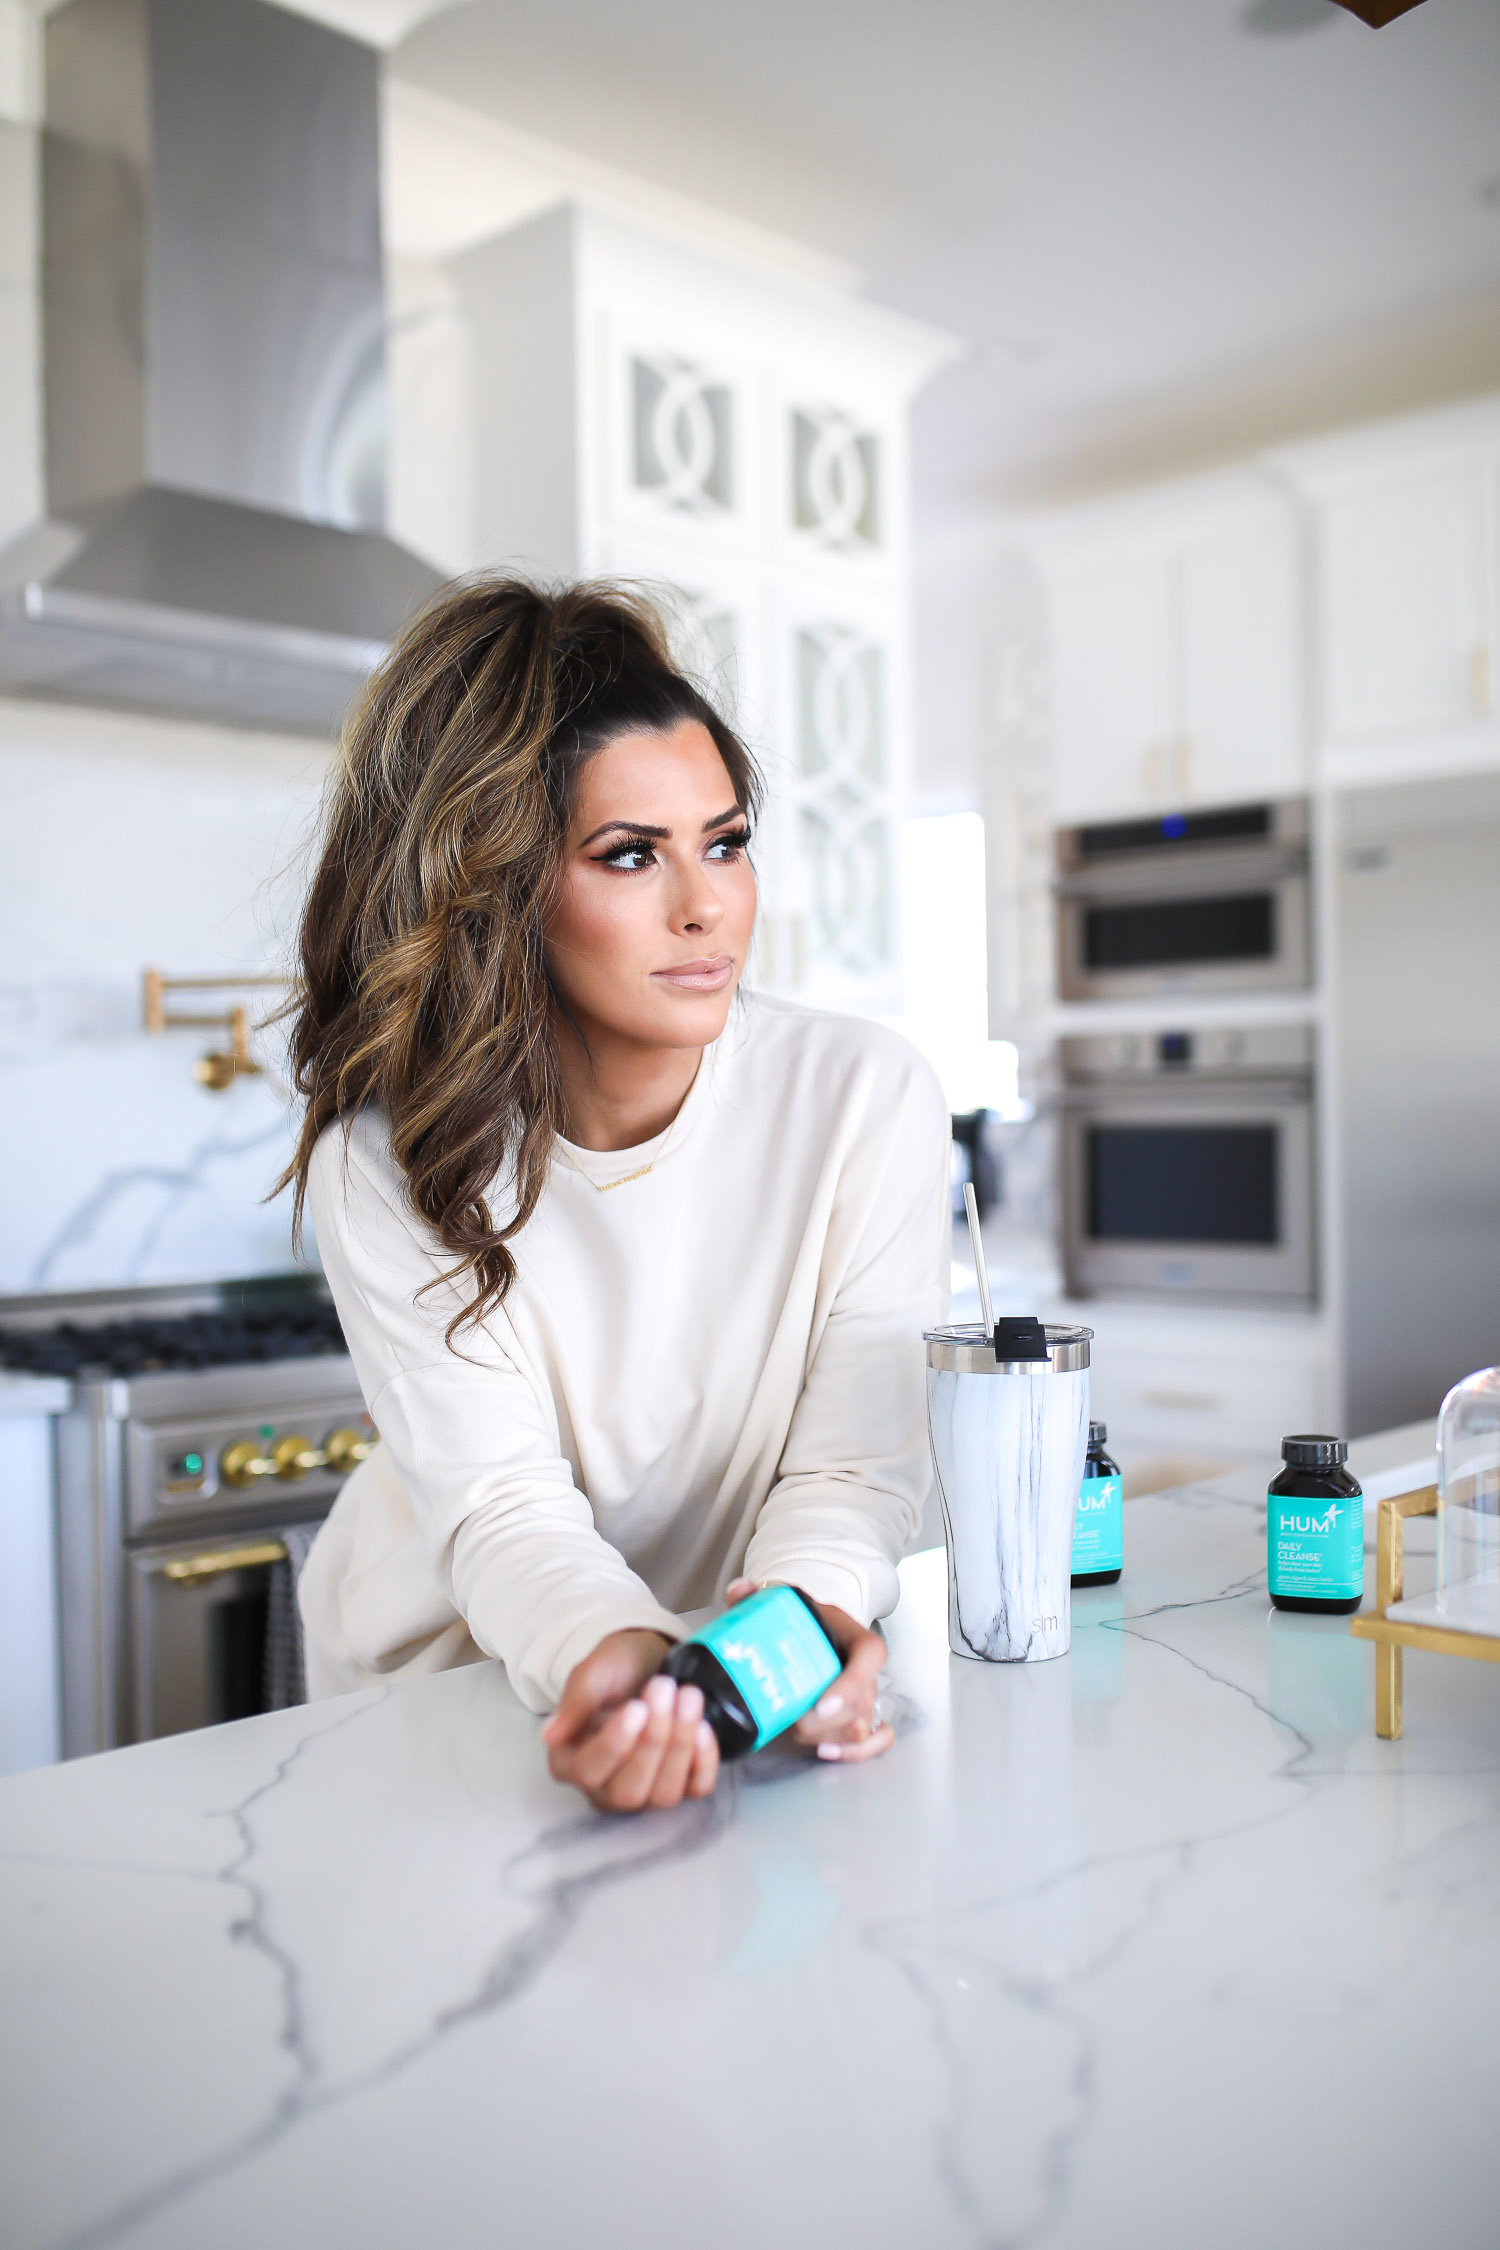 hum nutrition daily cleanse supplements, skin clearing vitamins, green algae vitamins, emily gemma skincare routine | Hum Daily Cleanse by popular US lifestyle blog, The Sweetest Thing: image of a woman wearing a cream colored lounge set and pouring some Hum Daily Cleanse supplements into her hand.